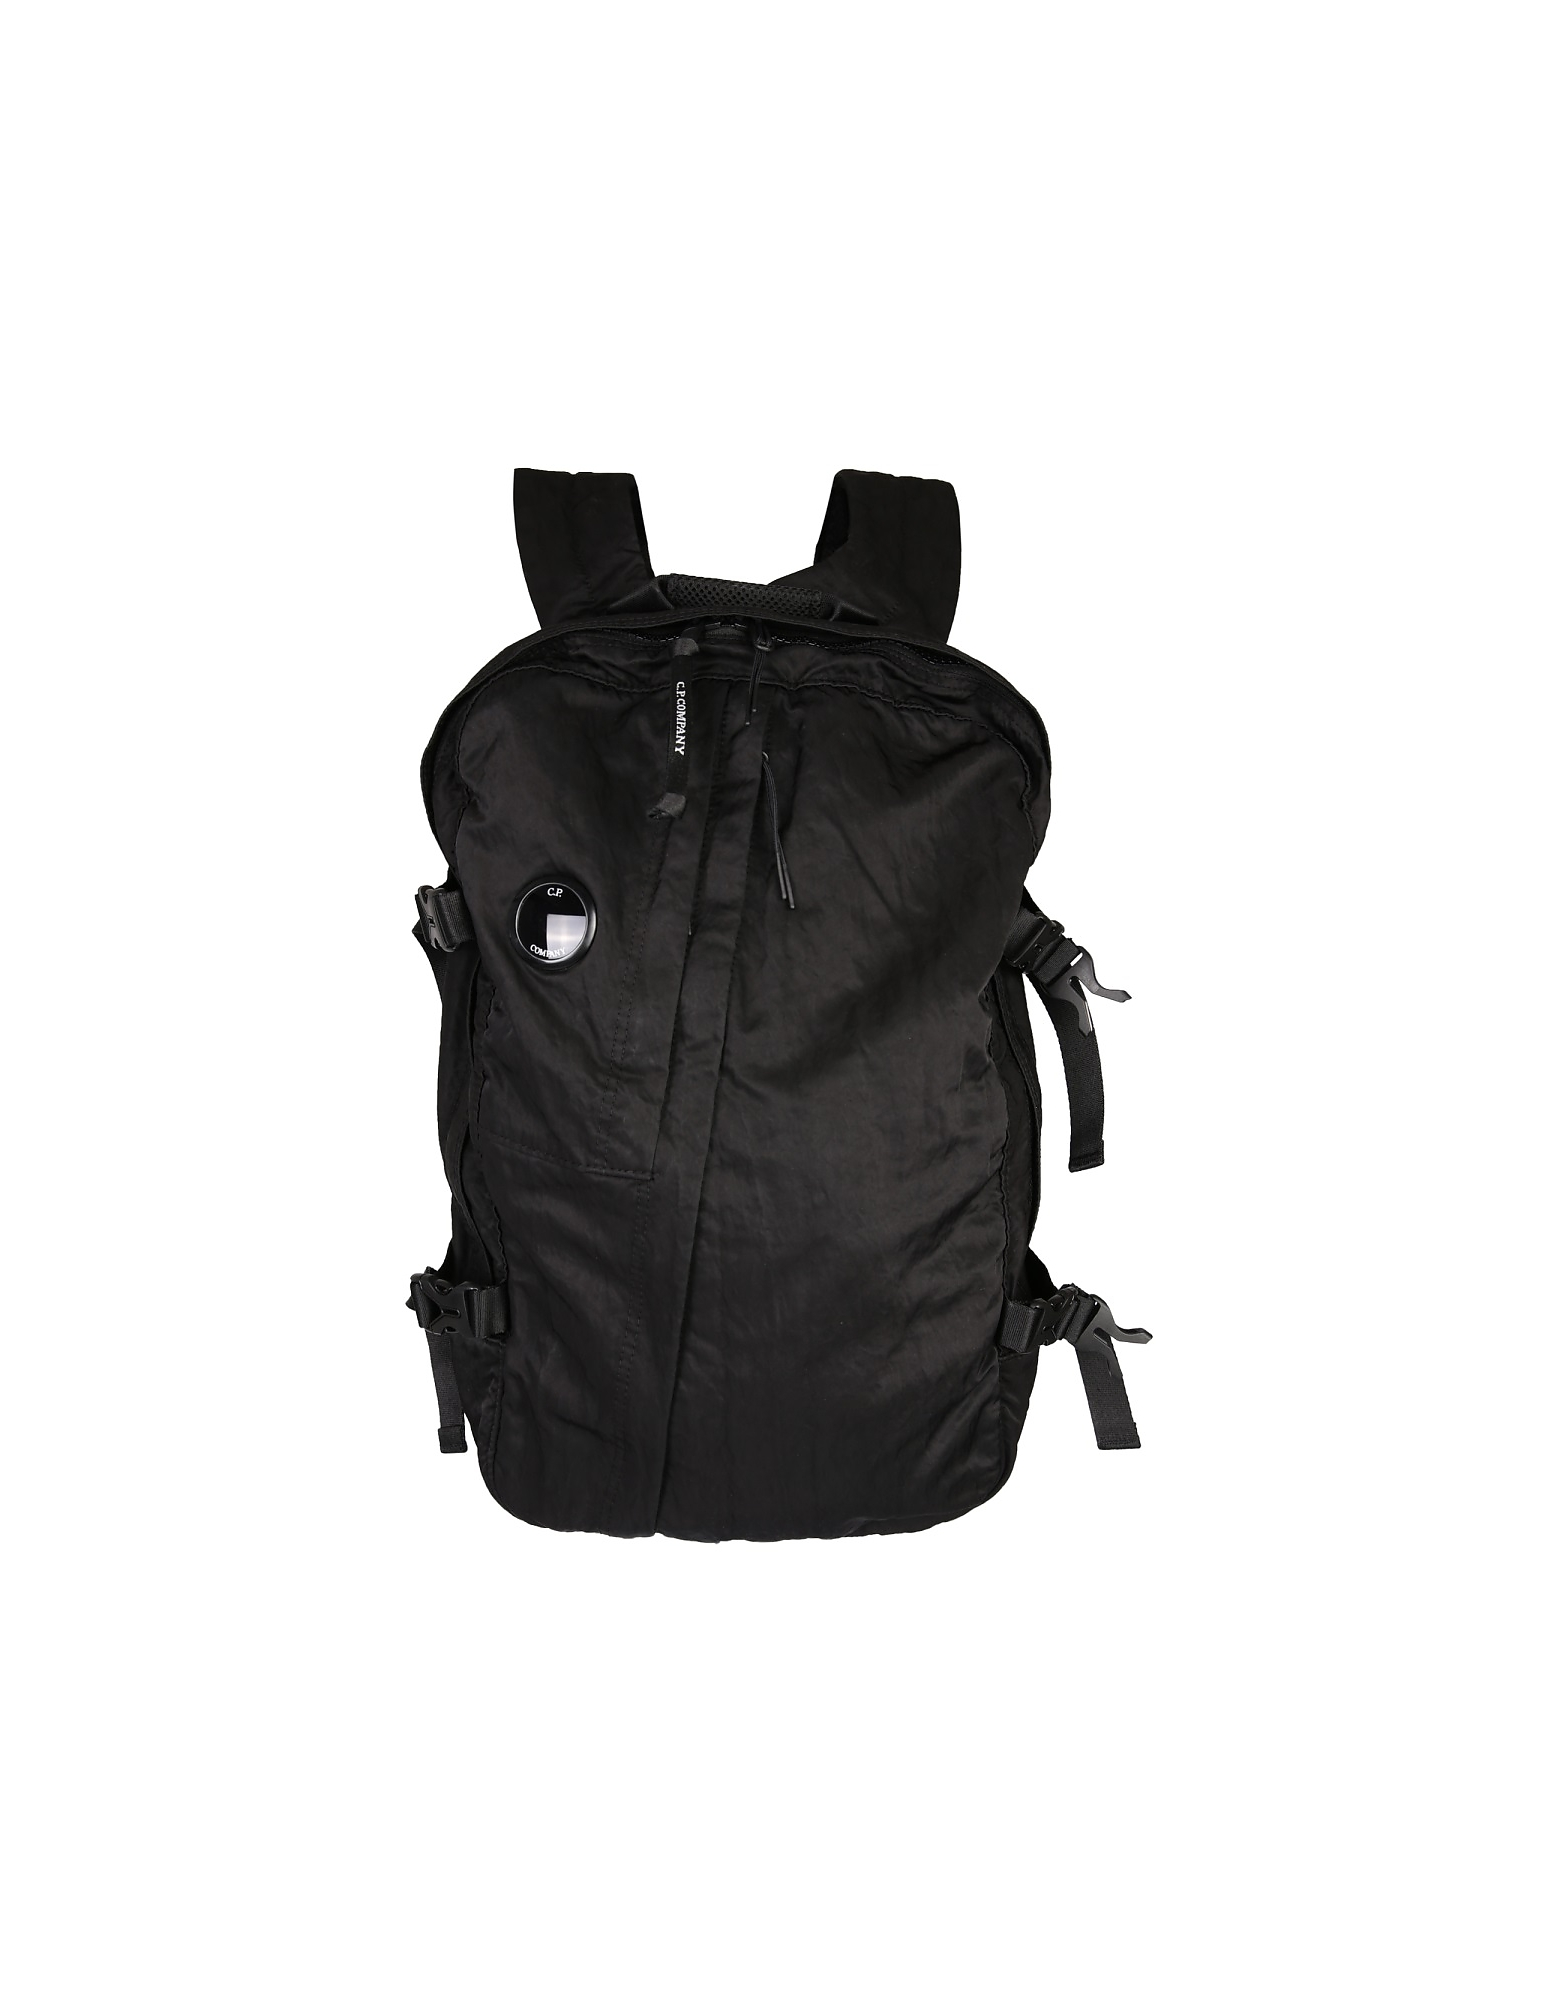 C.p. Company BACKPACK WITH ICONIC LENS